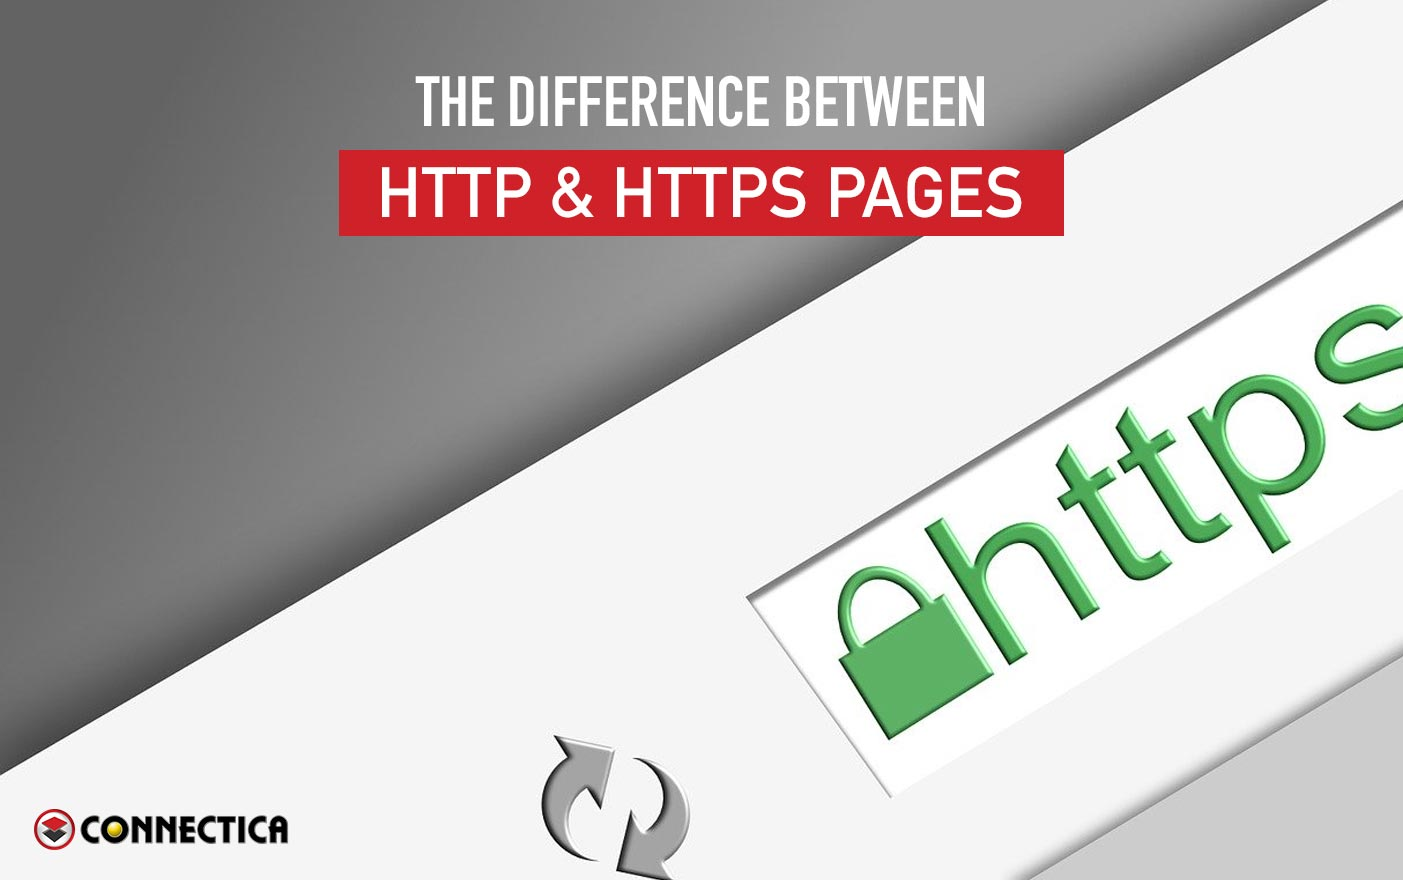 Website Design: The Difference Between HTTP & HTTPS Pages